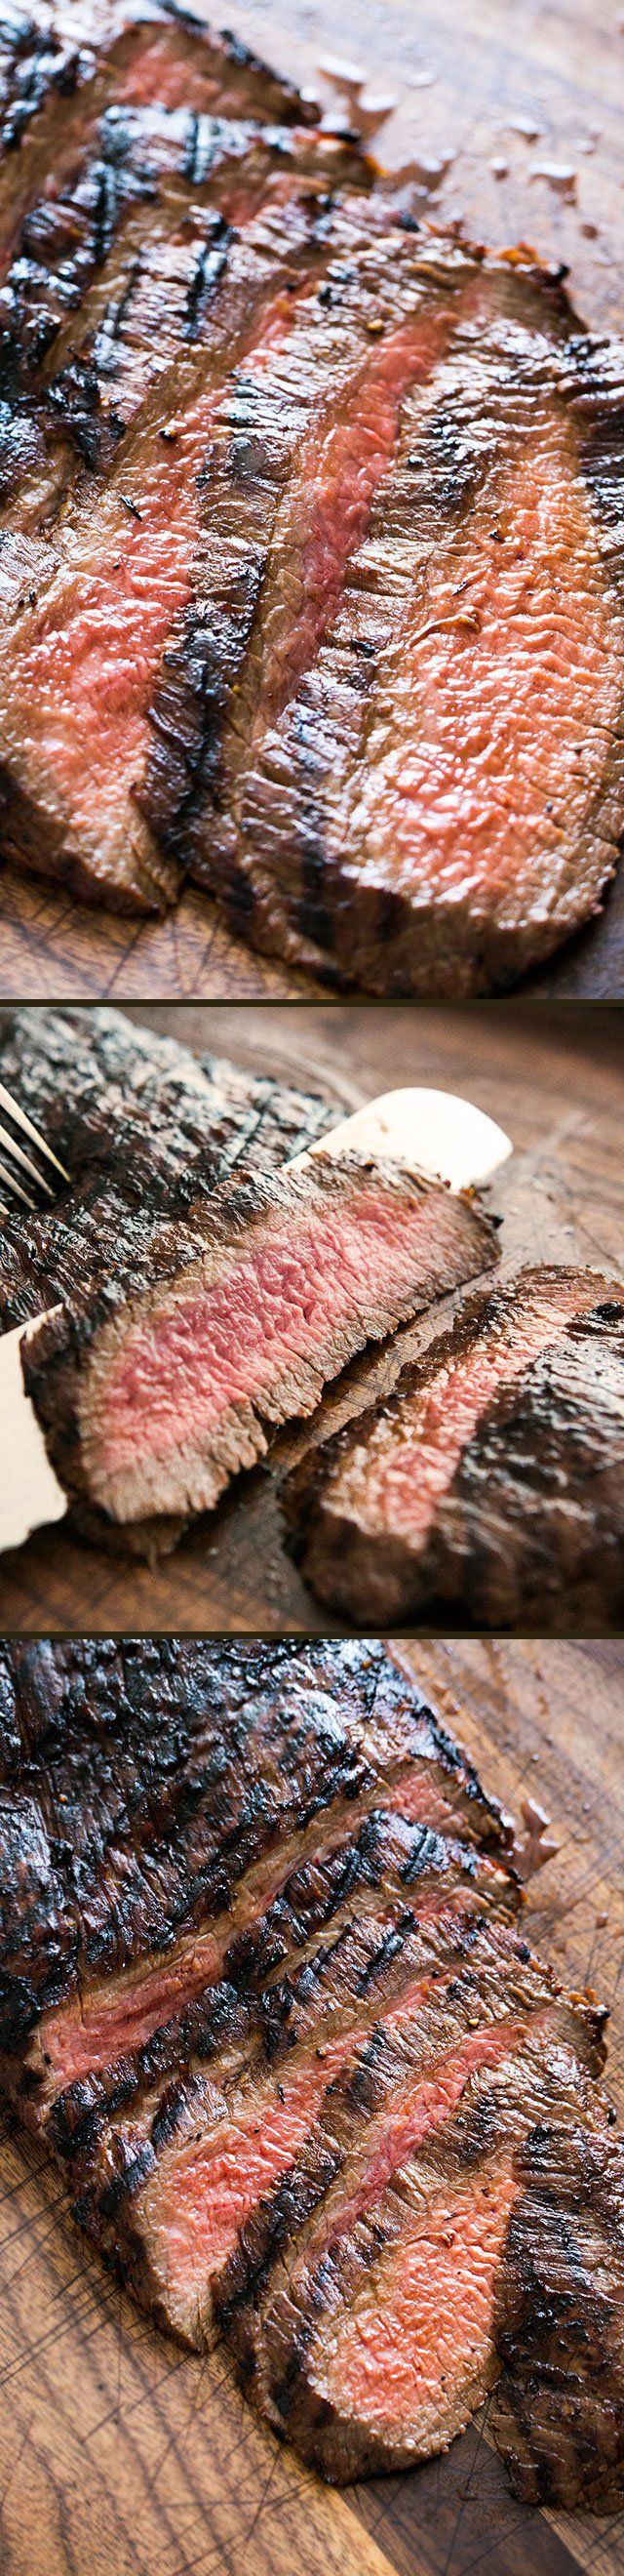 Grilled Marinated Flank Steak is a melt in your mouth delicious! The marinade of soy sauce, honey and garlic does the trick for this cut of meat. #Grilling #EasyDinner #Steak #FlankSteak #Paleo